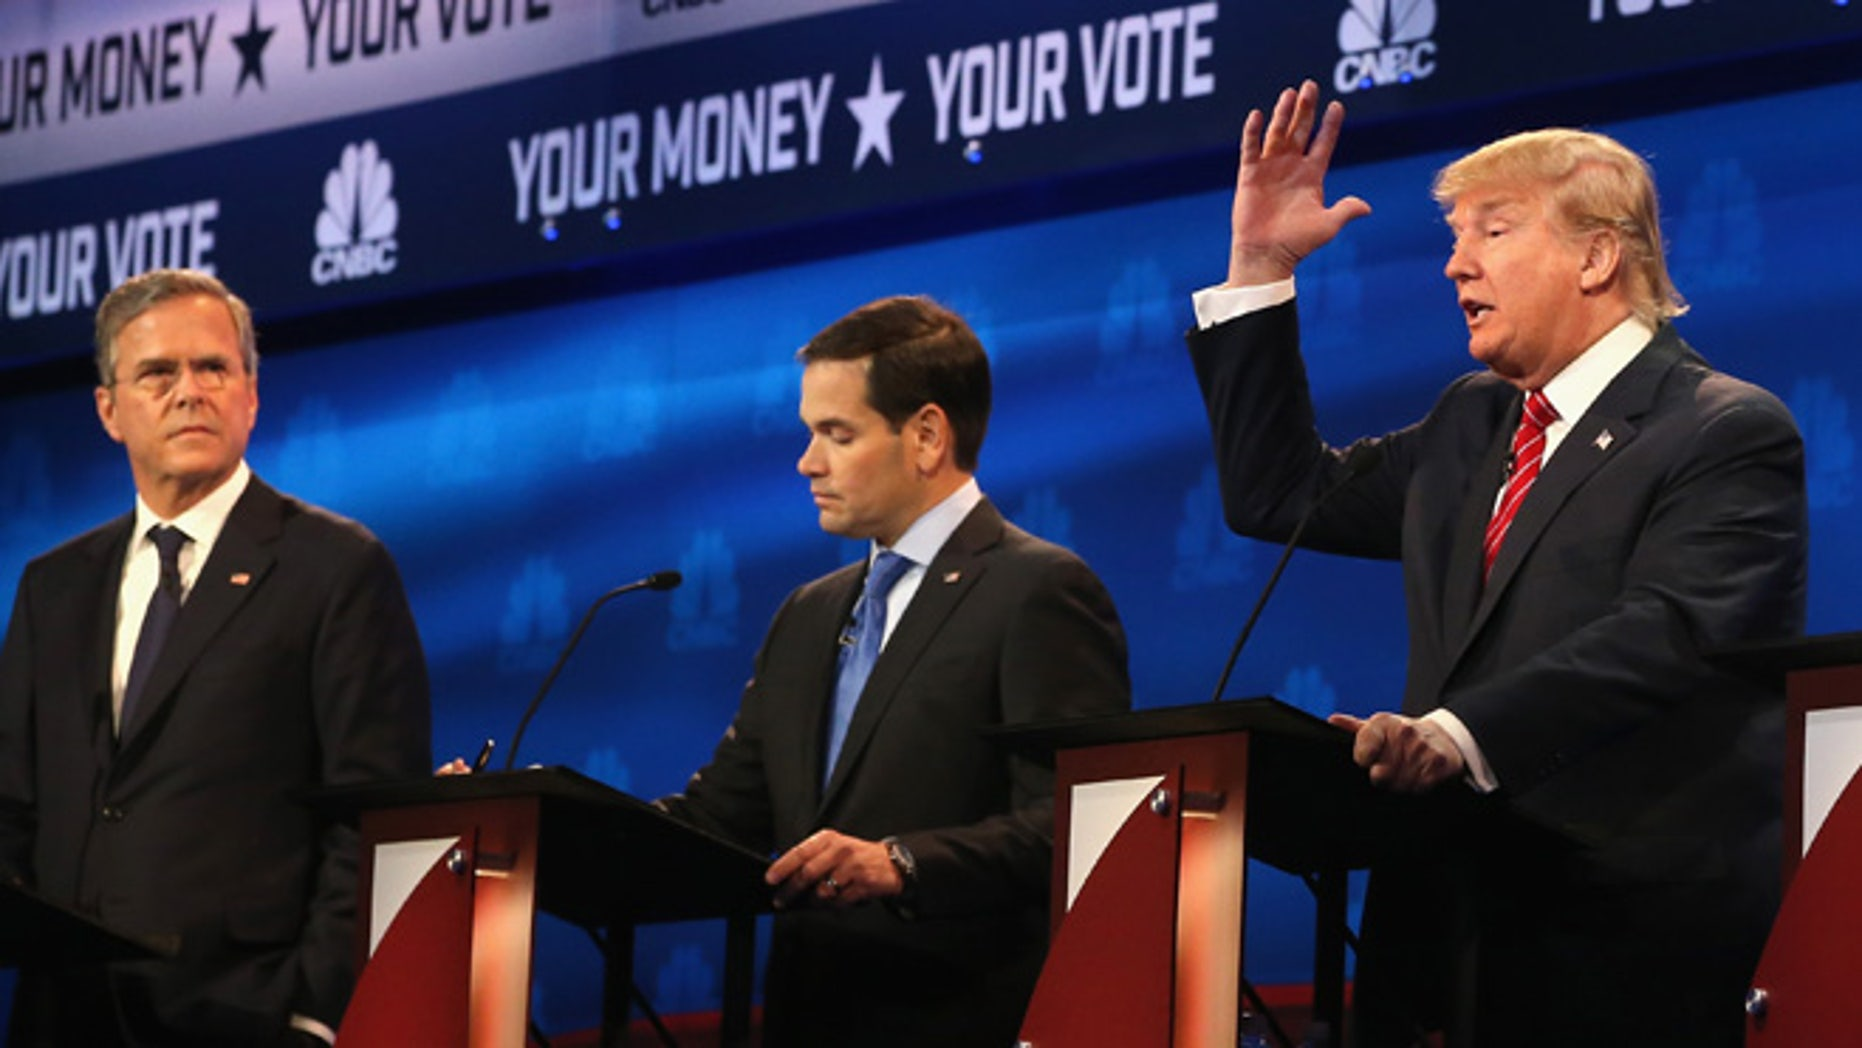 Presidential candidates Donald Trump speaks while Sen. Marco Rubio (R-FL) and Jeb Bush look on during the CNBC Republican Presidential Debate at University of Colorado's Coors Events Center October 28, 2015 in Boulder, Colorado. (Photo by Justin Sullivan/Getty Images)